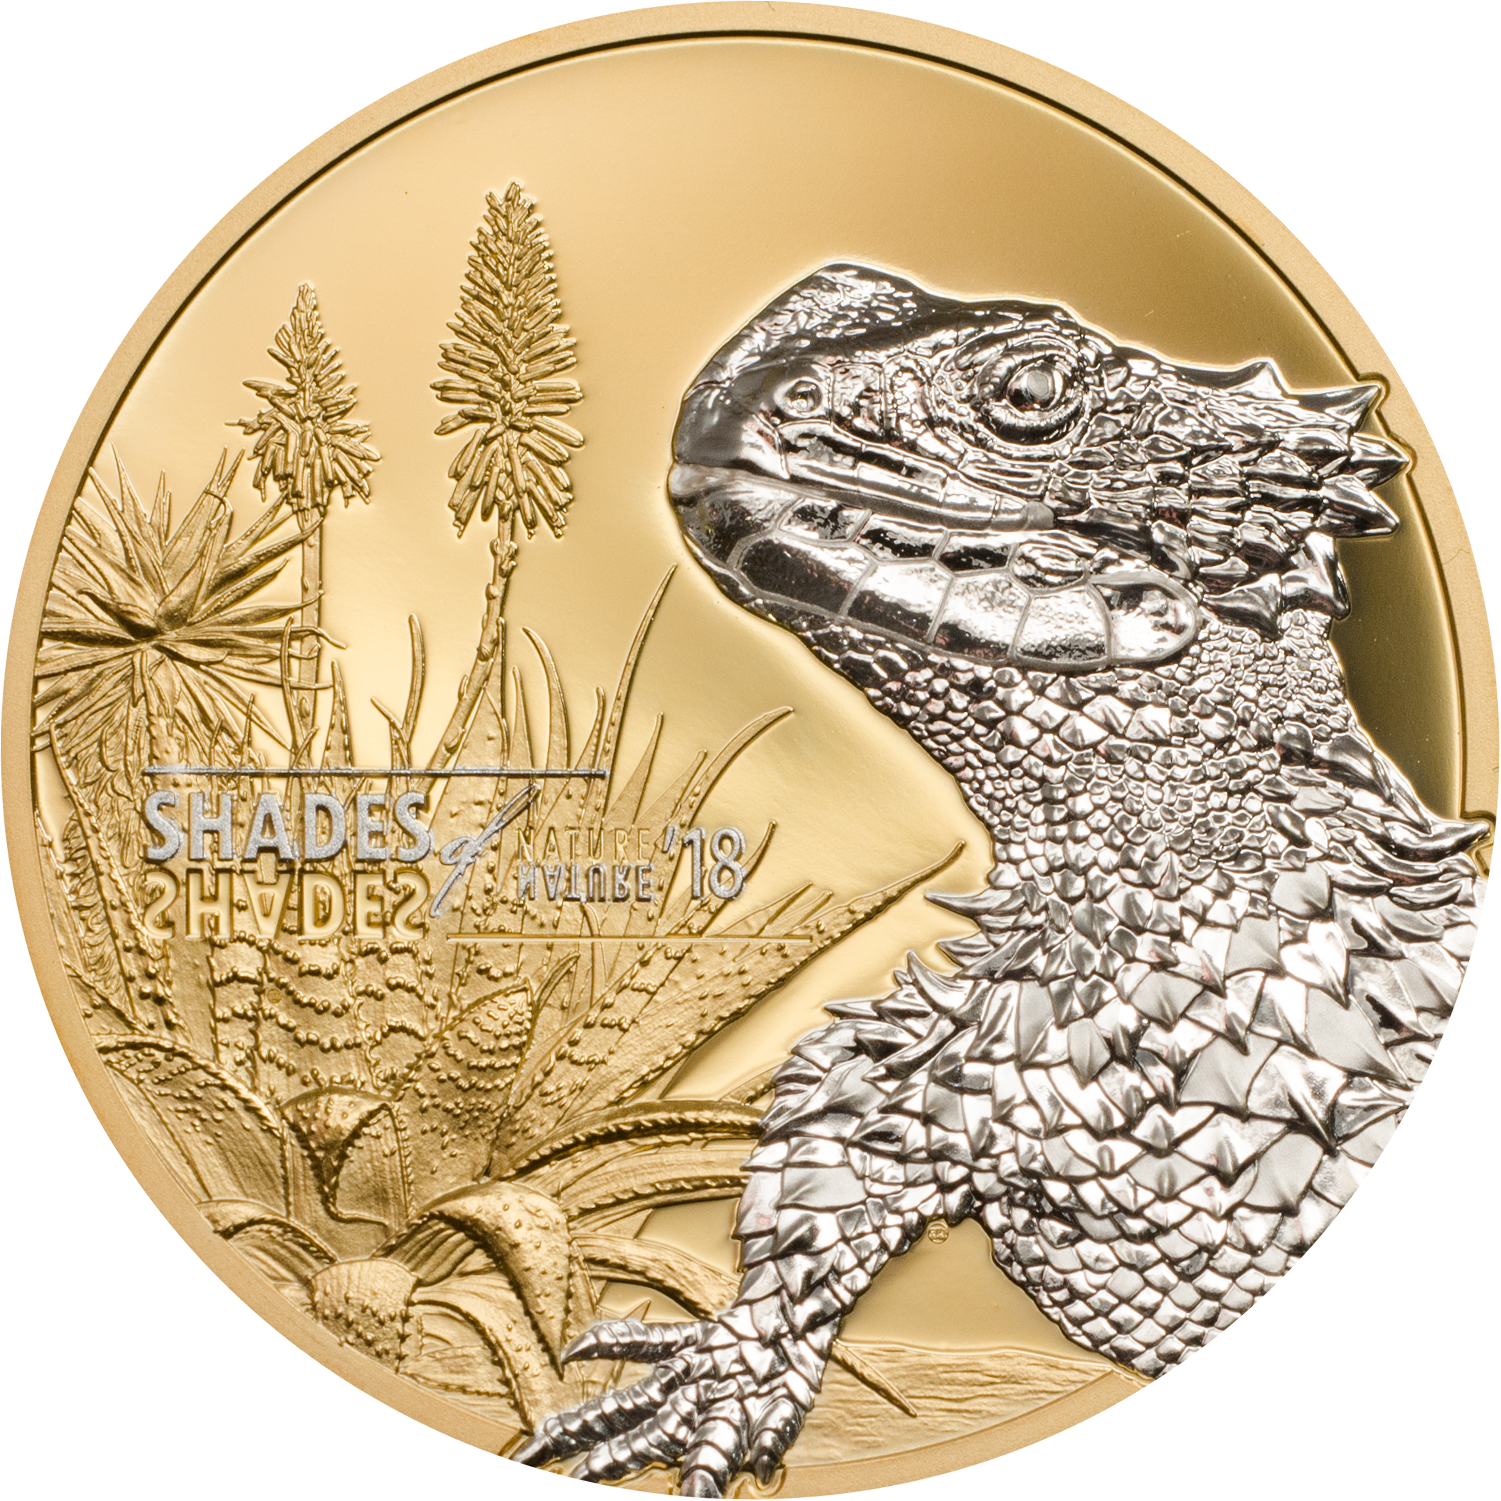 Cook Islands - 2018 - 5 Dollars - Shades of Nature LIZARD